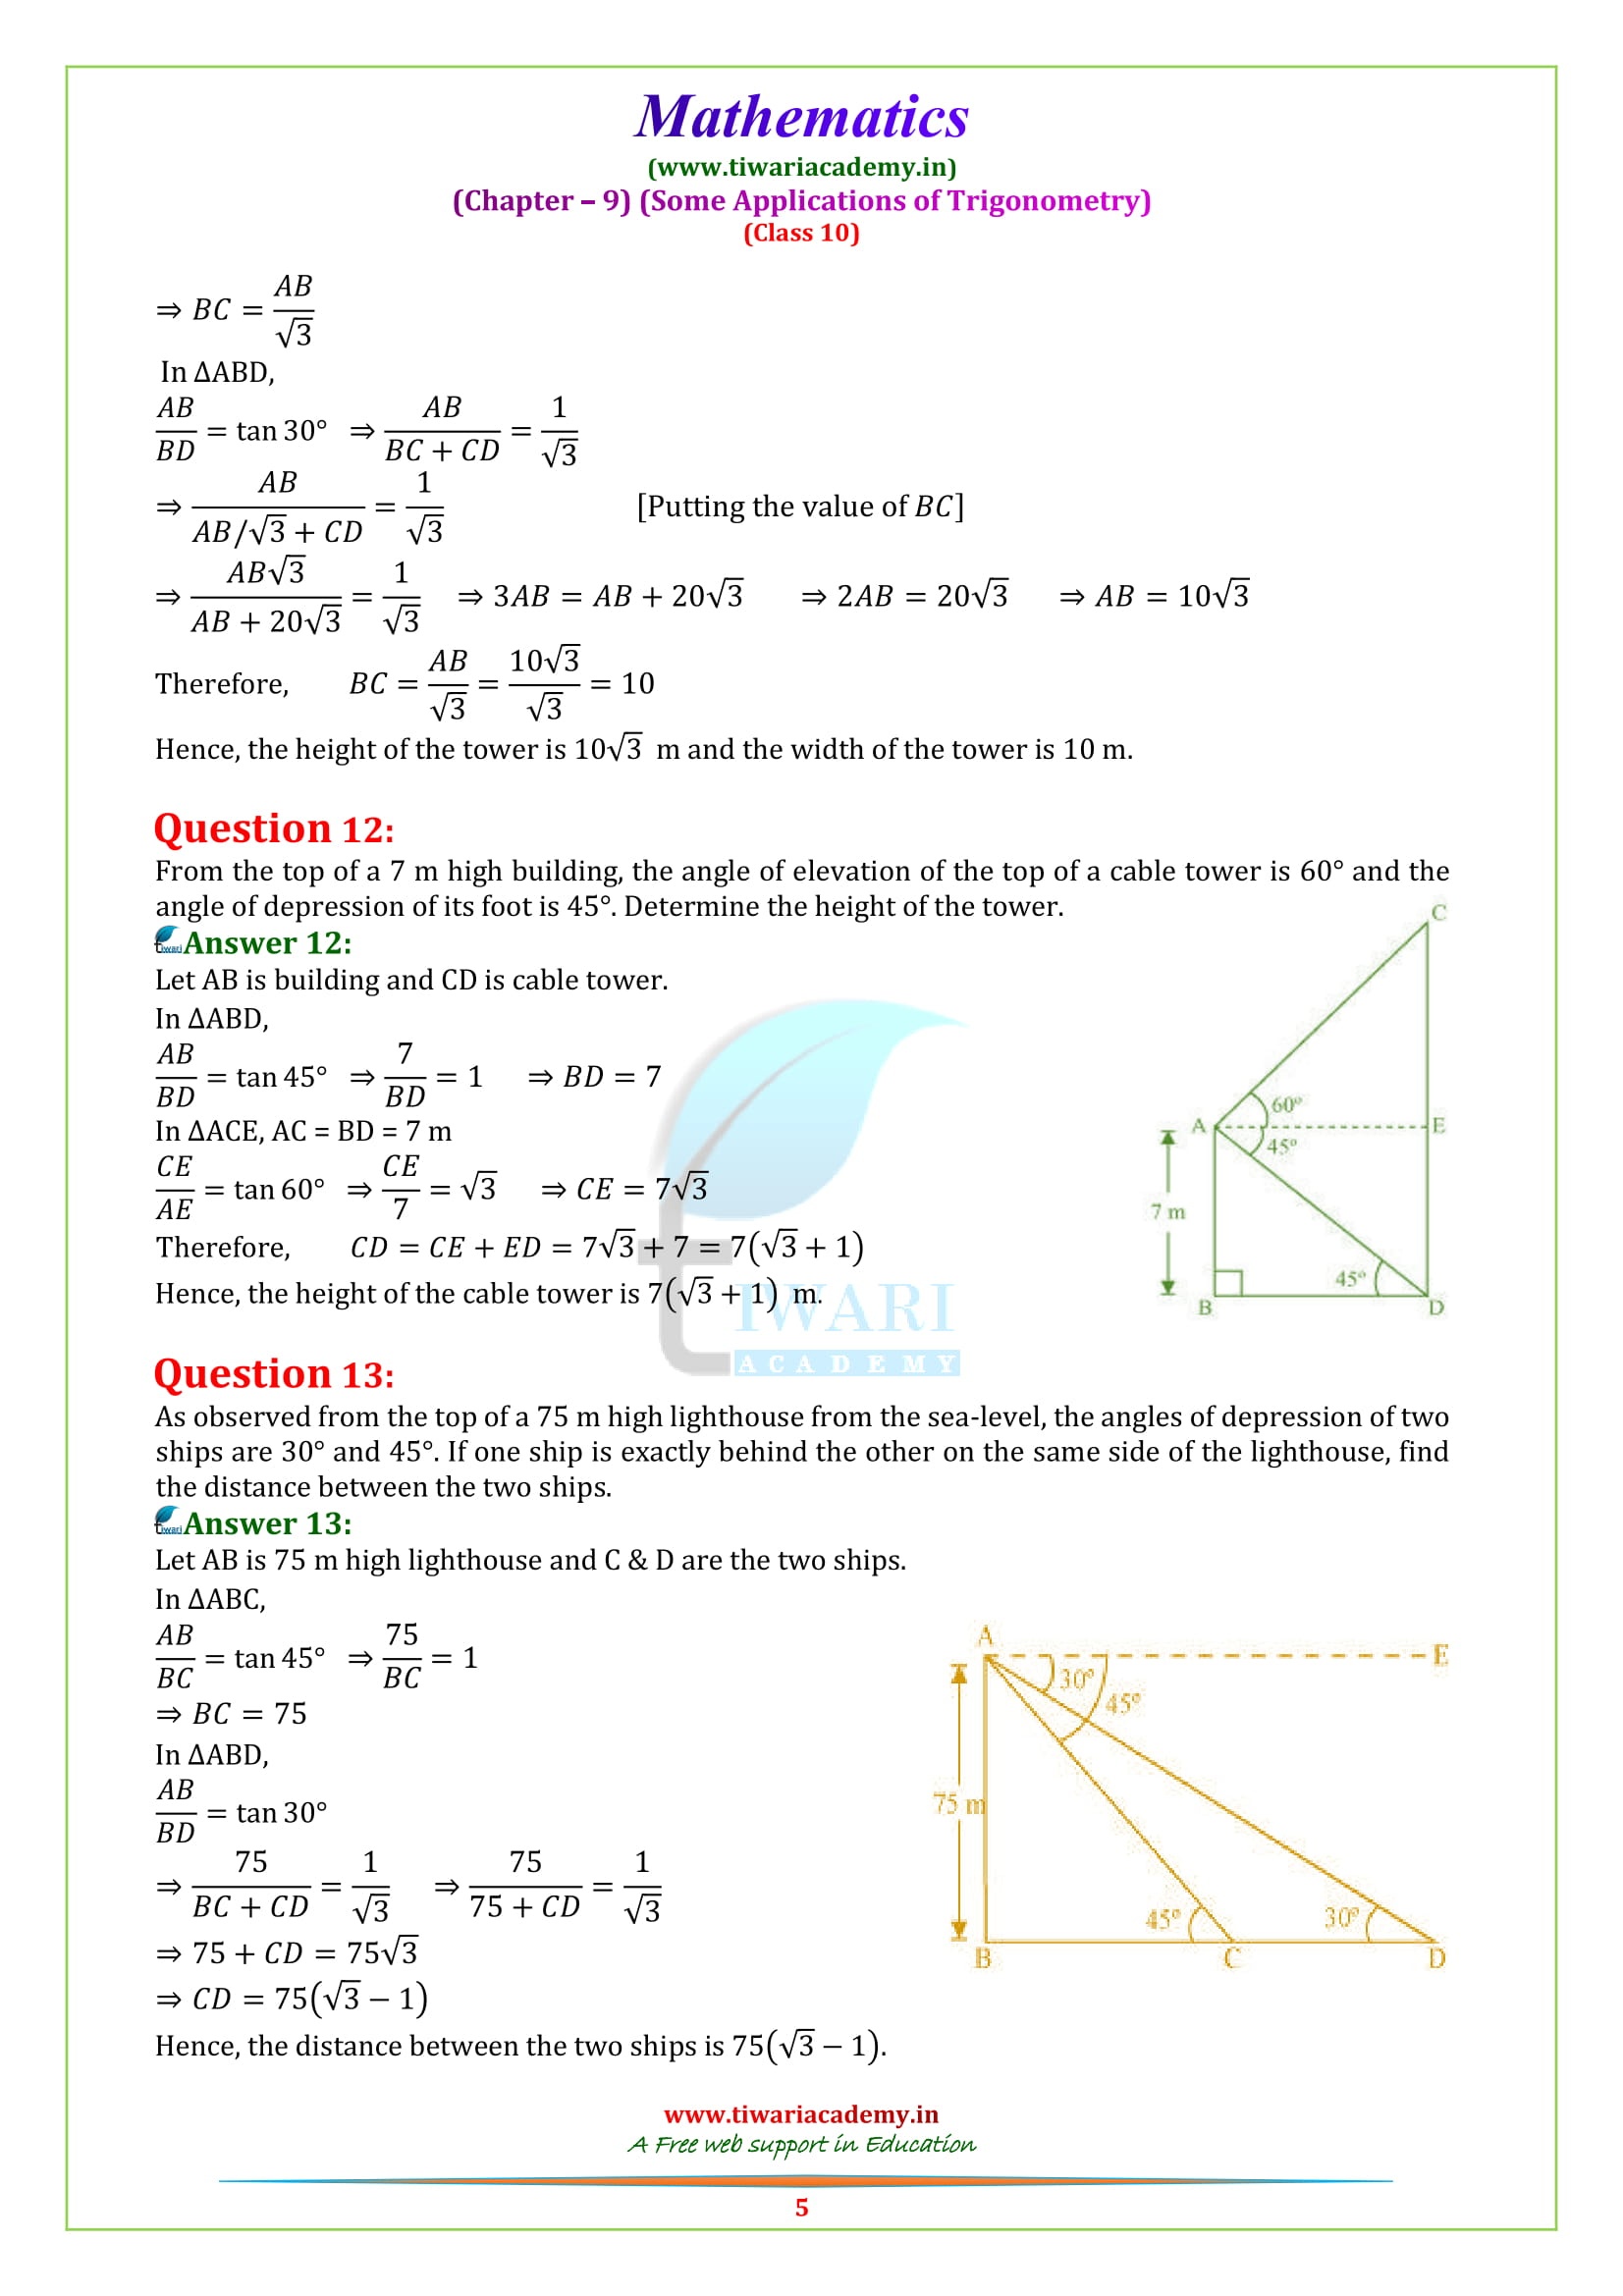 10 Maths exercise 9.1 question 11, 12 and 13 solutions